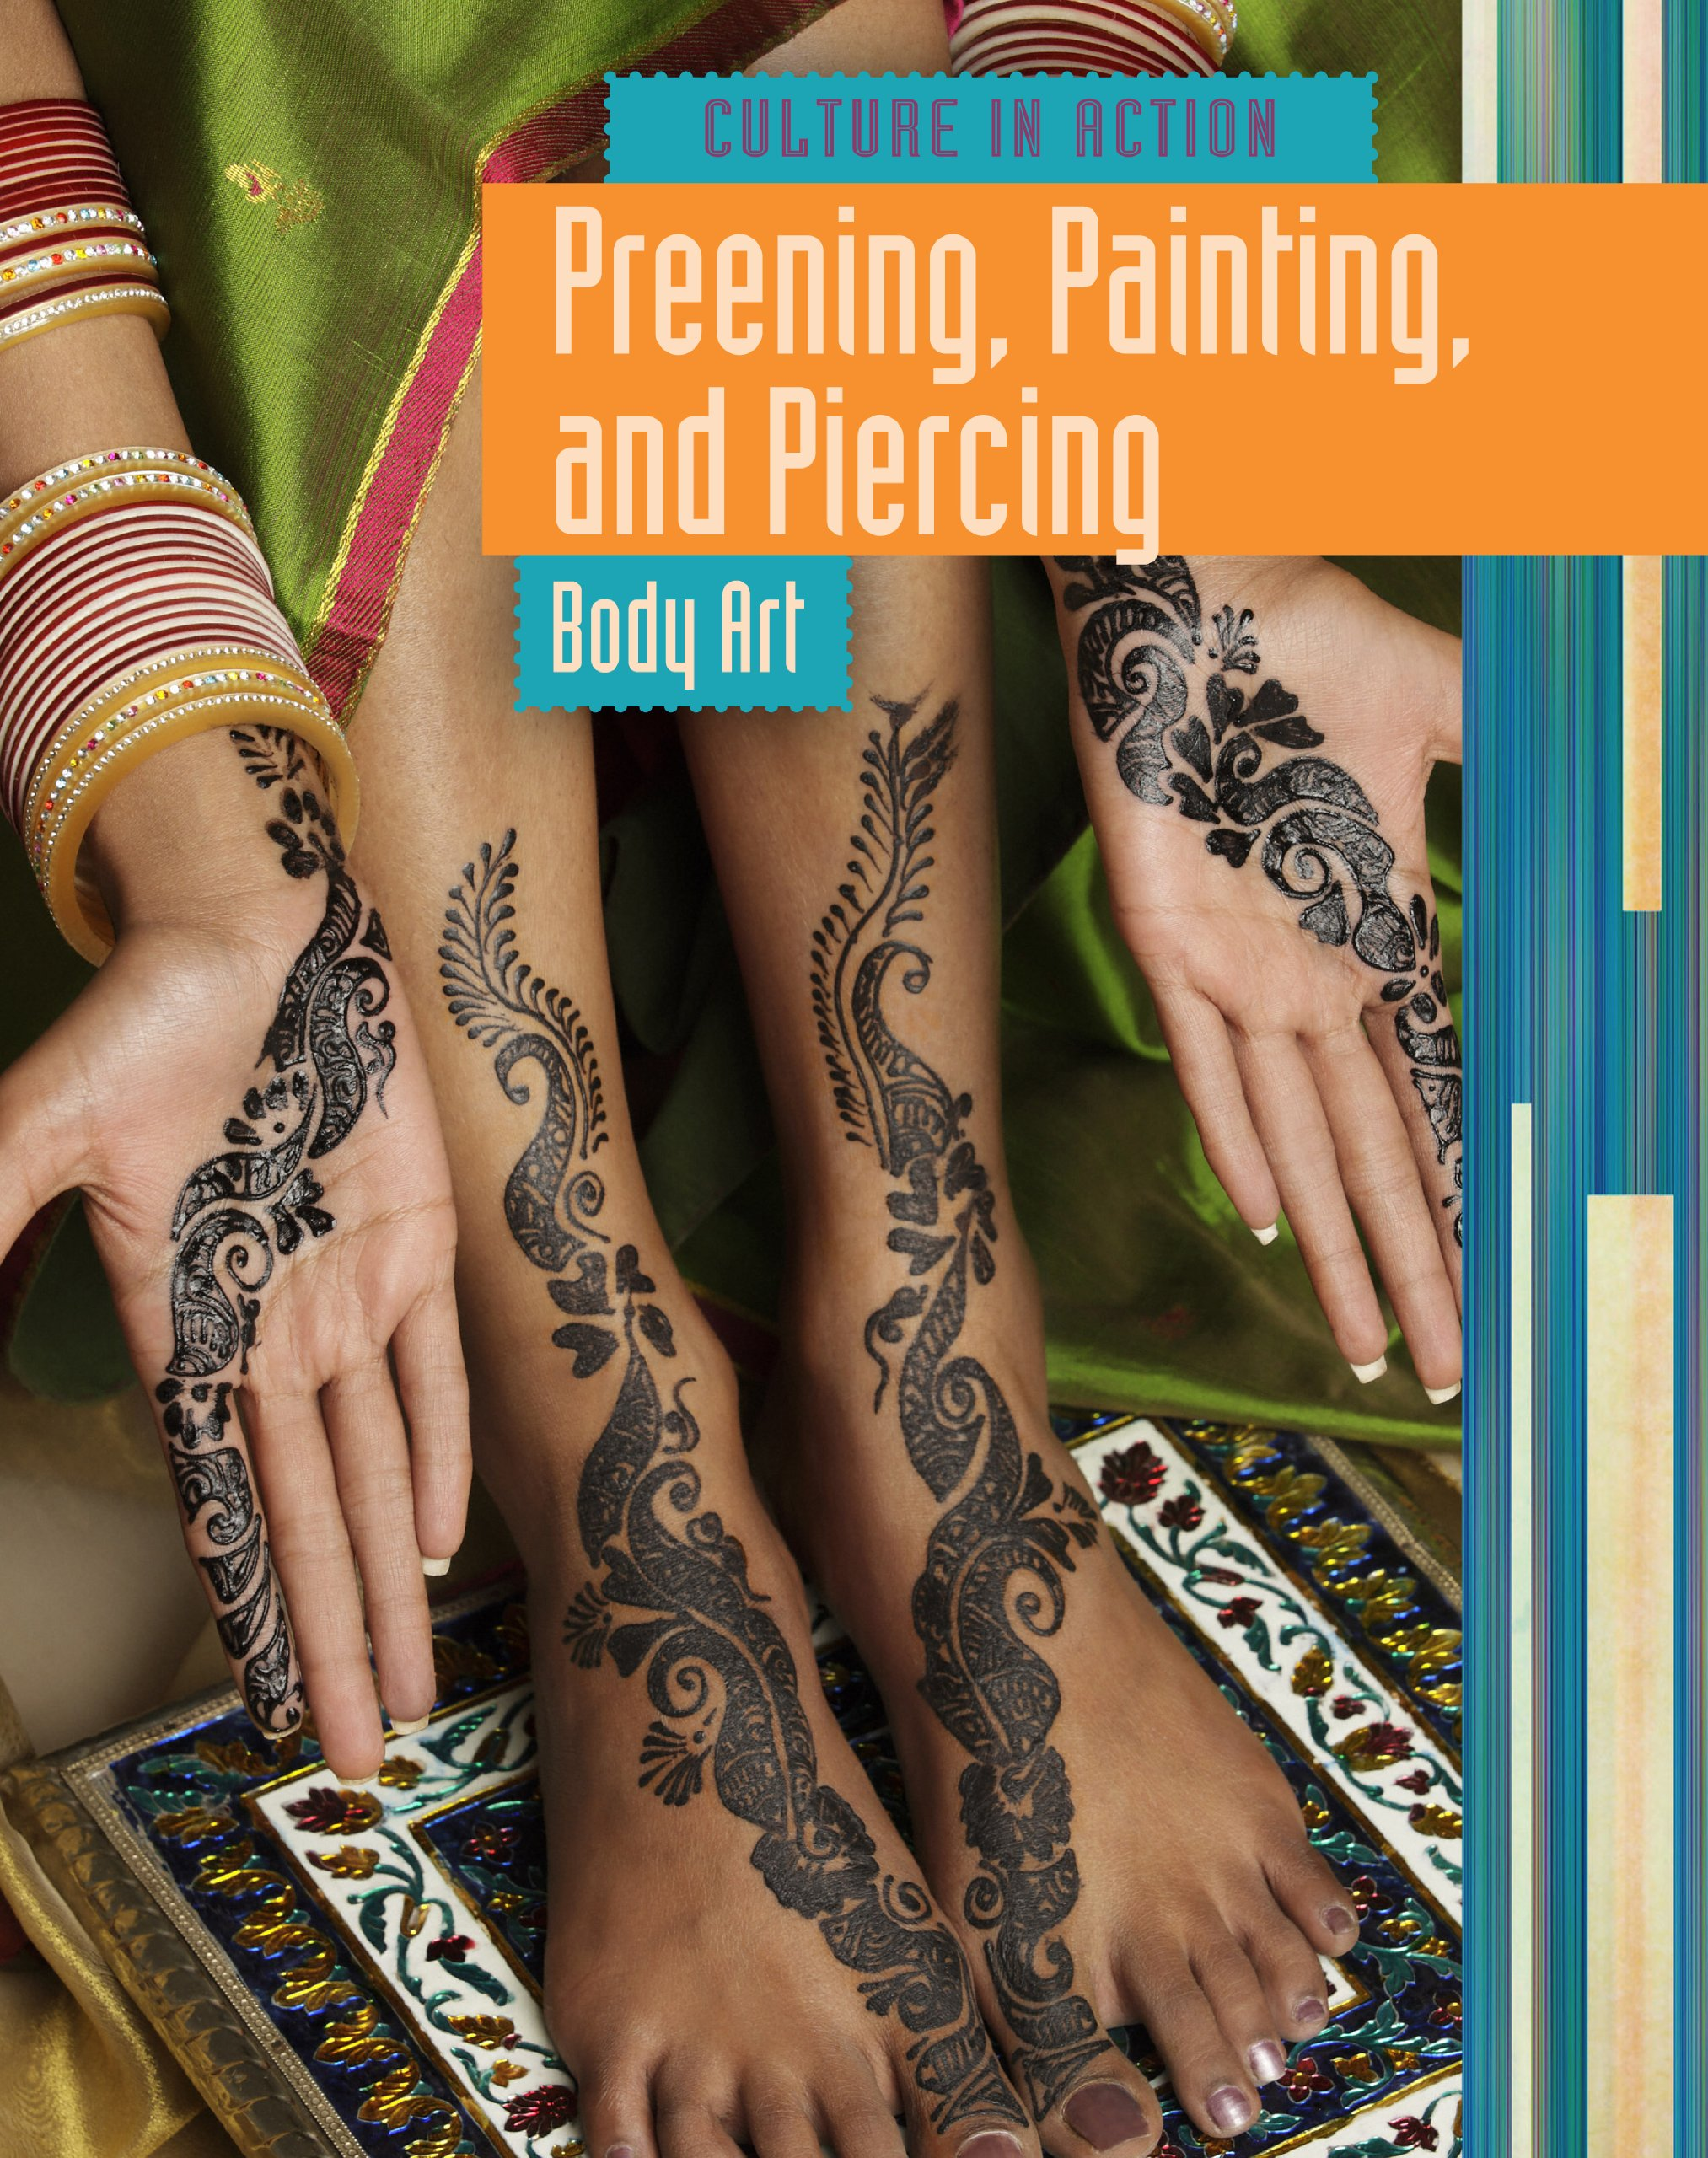 Preening Painting And Piercing Body Art Culture In Action Amazon Co Uk Bliss John Books